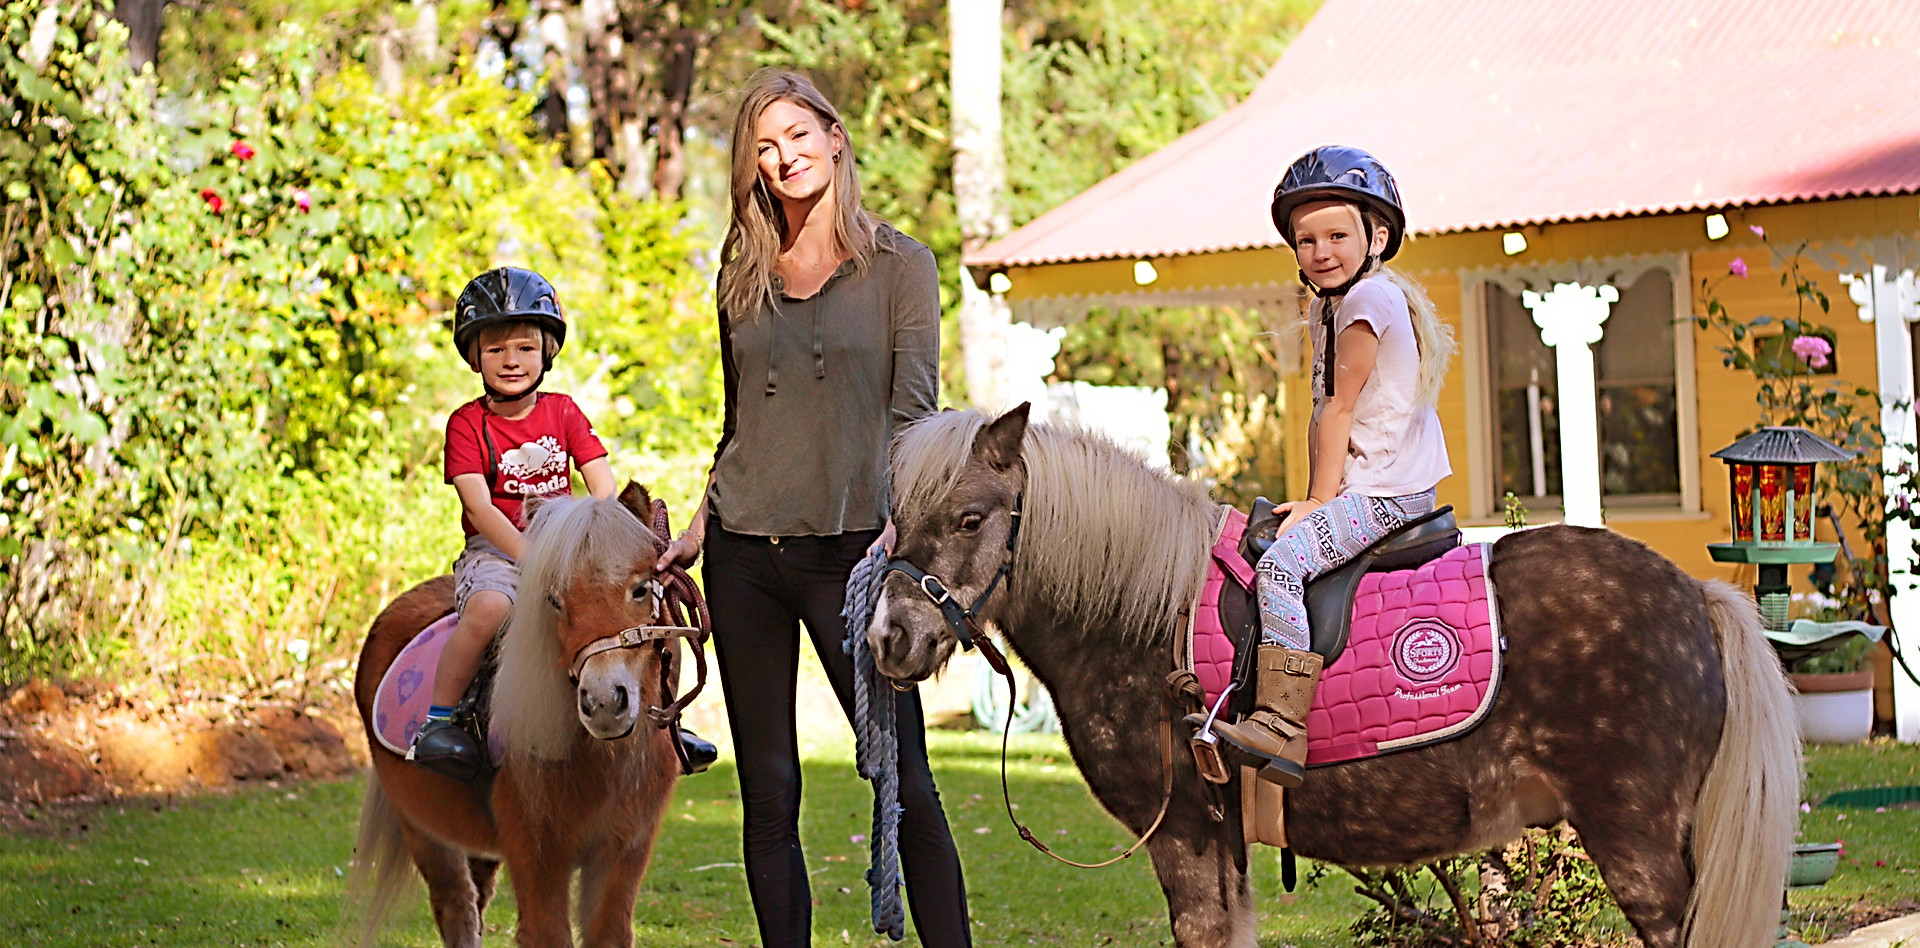 Pony rides for all ages!